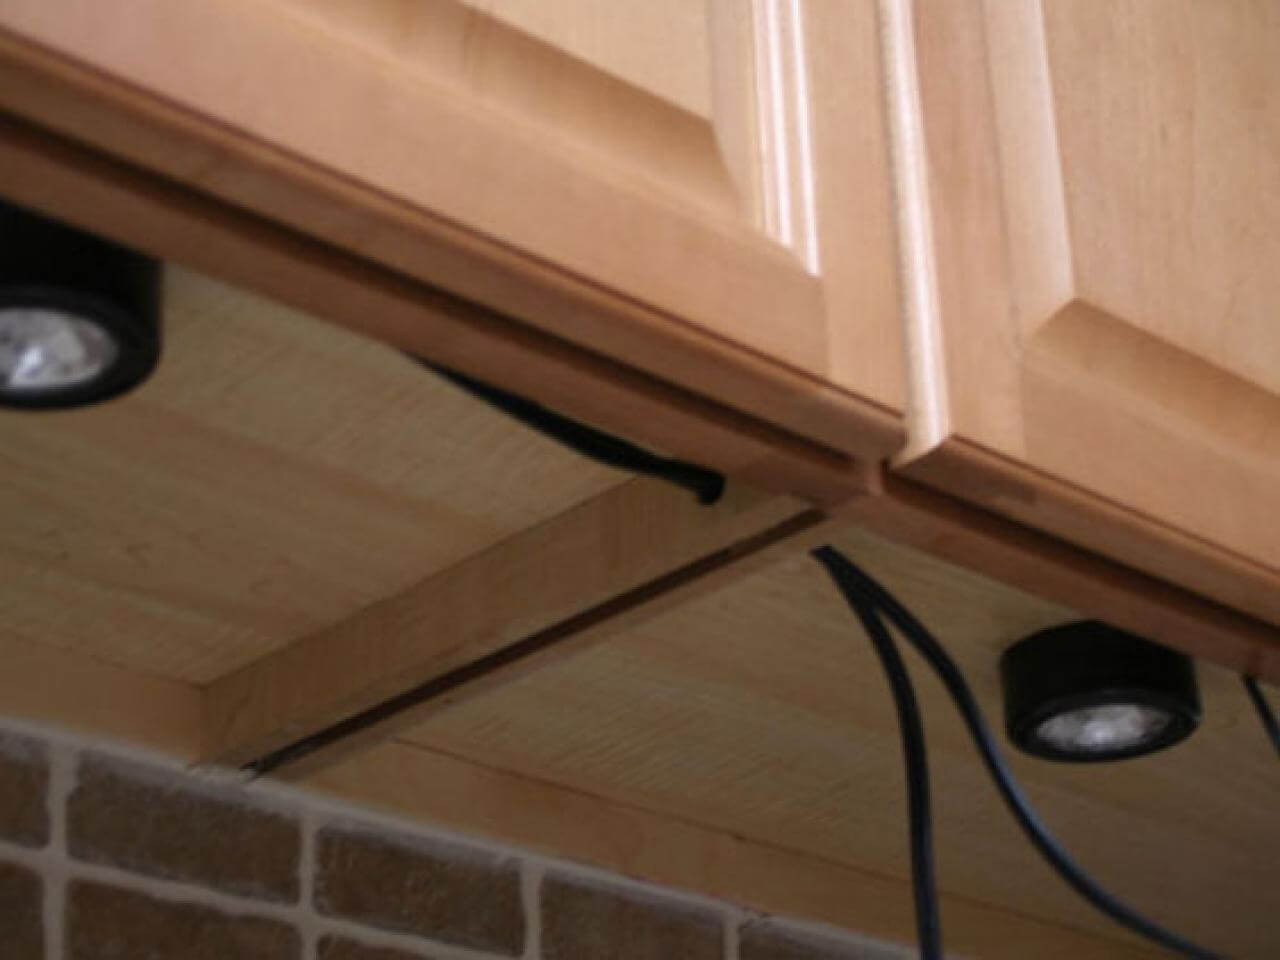 Under cabinet lighting can solve a few issues